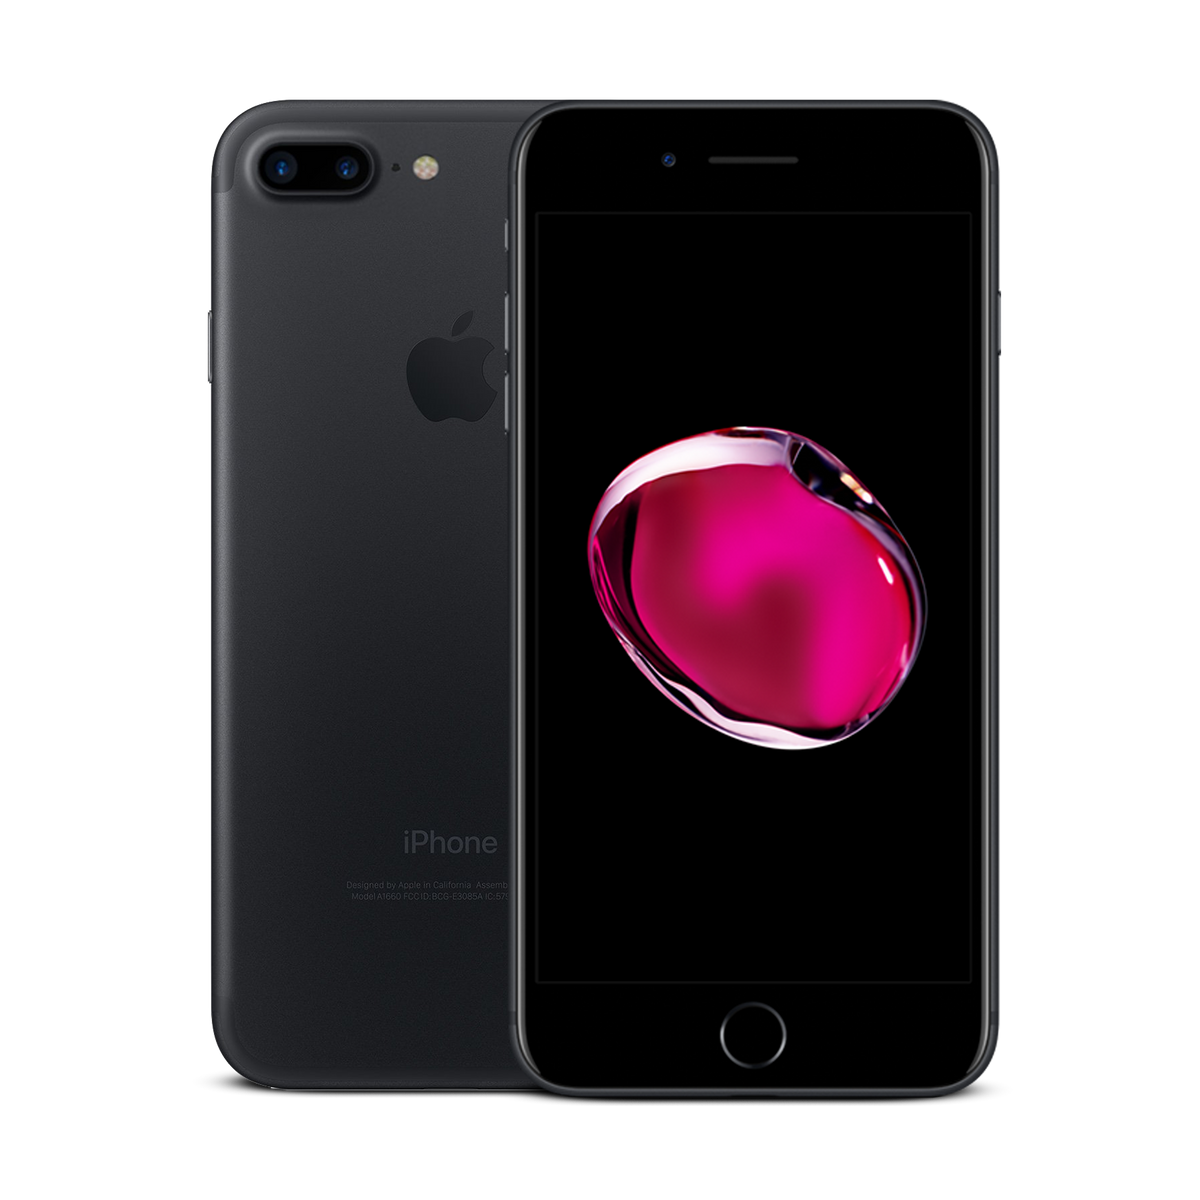 iPhone 7 Plus 32GB Black | Condition Very Good